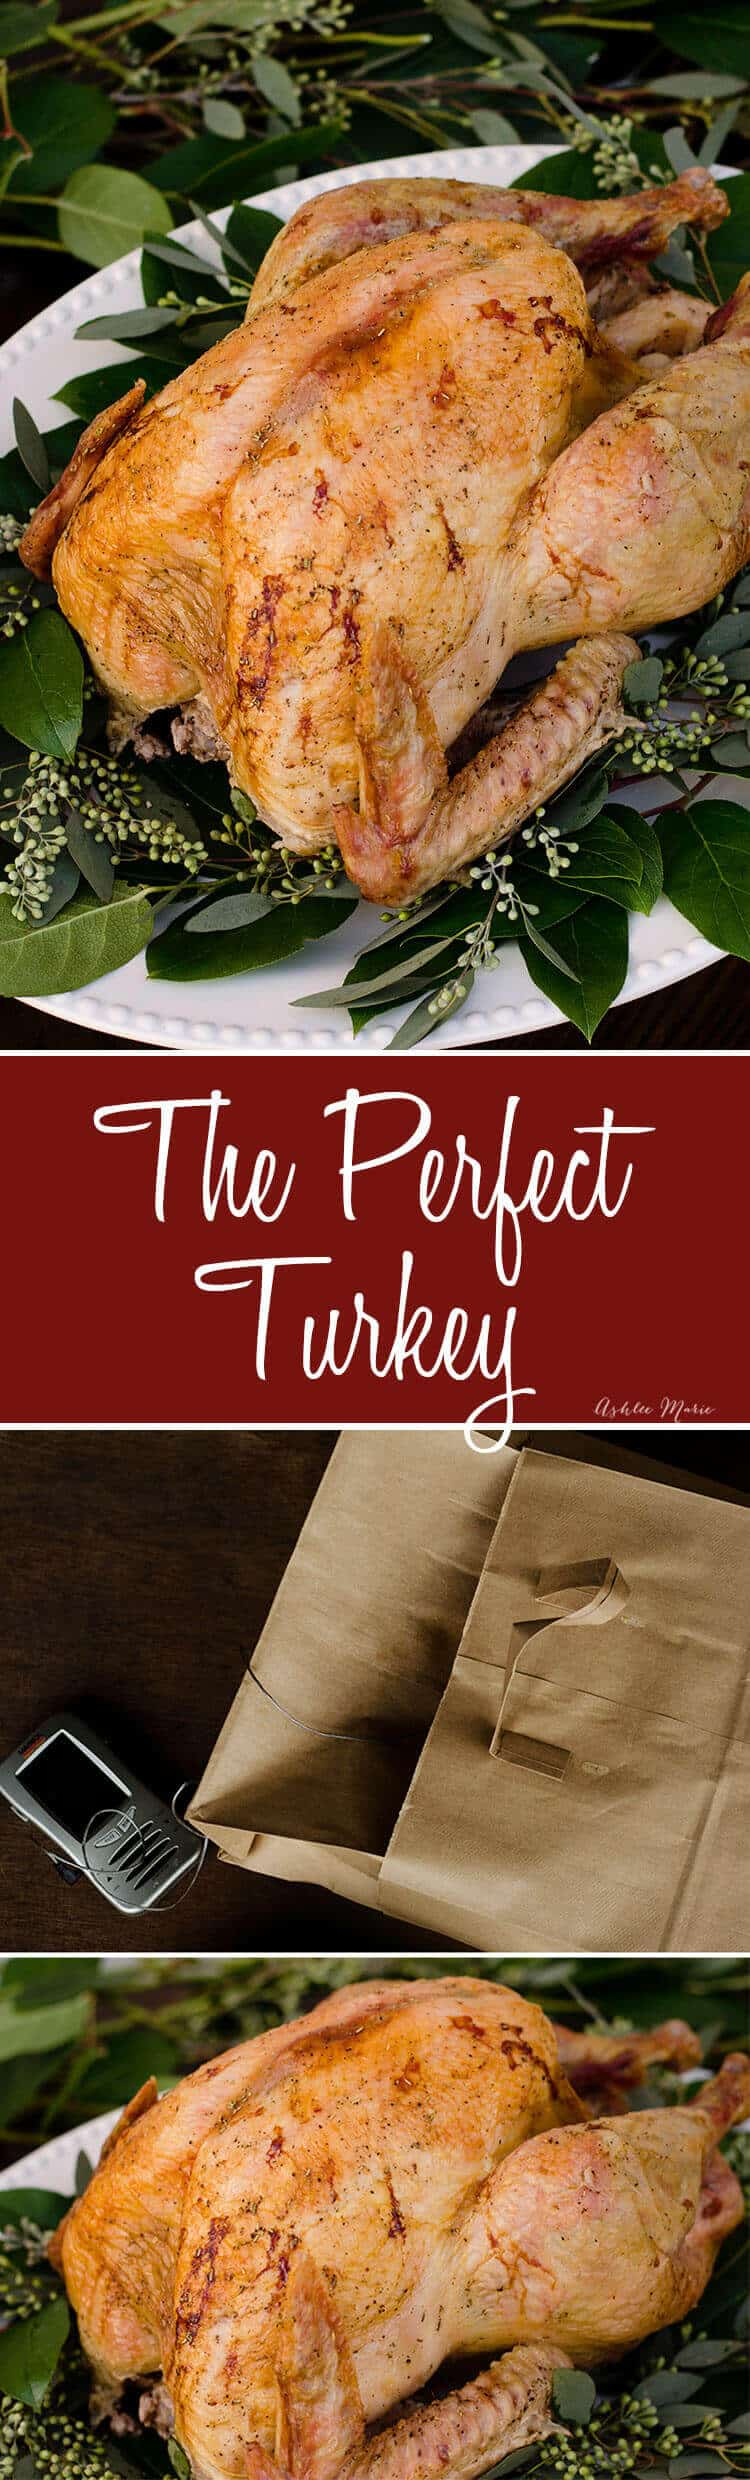 The perfect turkey - moist, great flavor and a good skin - AND it cooks faster than other methods - compound butter and two brown bags - video tutorial